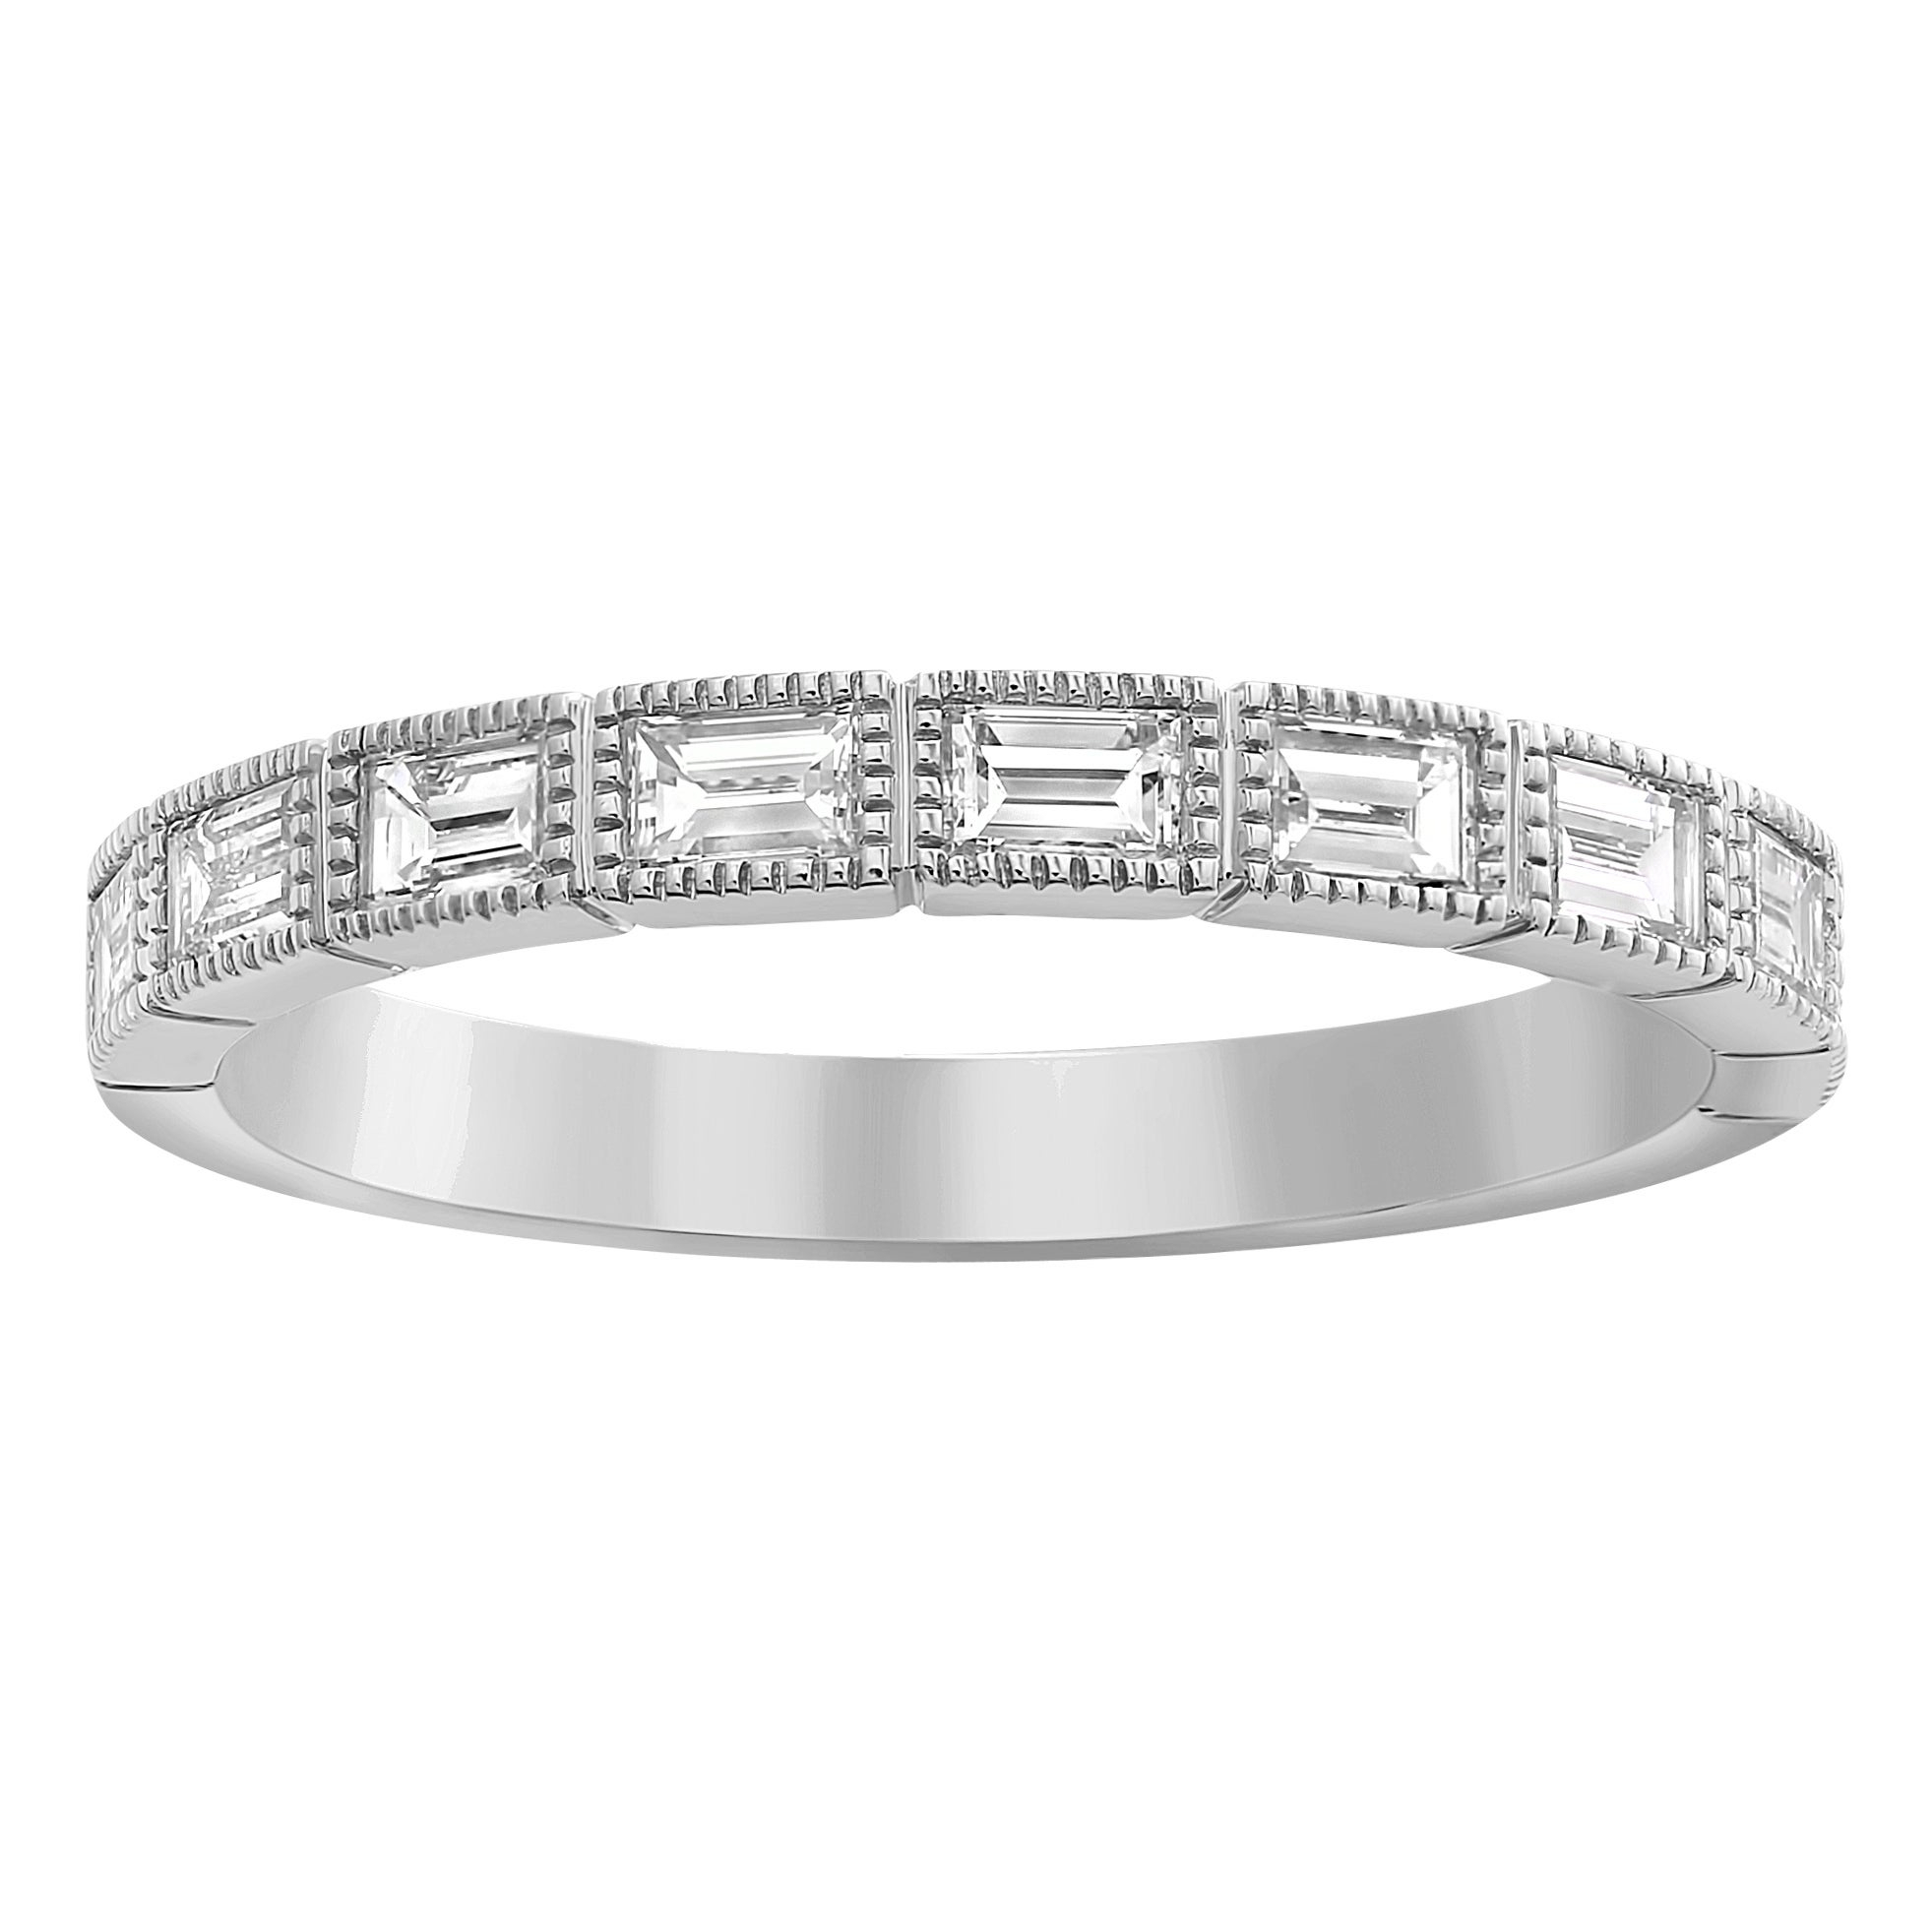 14kt White Gold 7/10ct Baguette Diamonds Vintage Wedding Band Ring Throughout Most Recently Released Round And Baguette Diamond Vintage Style Anniversary Bands In White Gold (View 10 of 25)